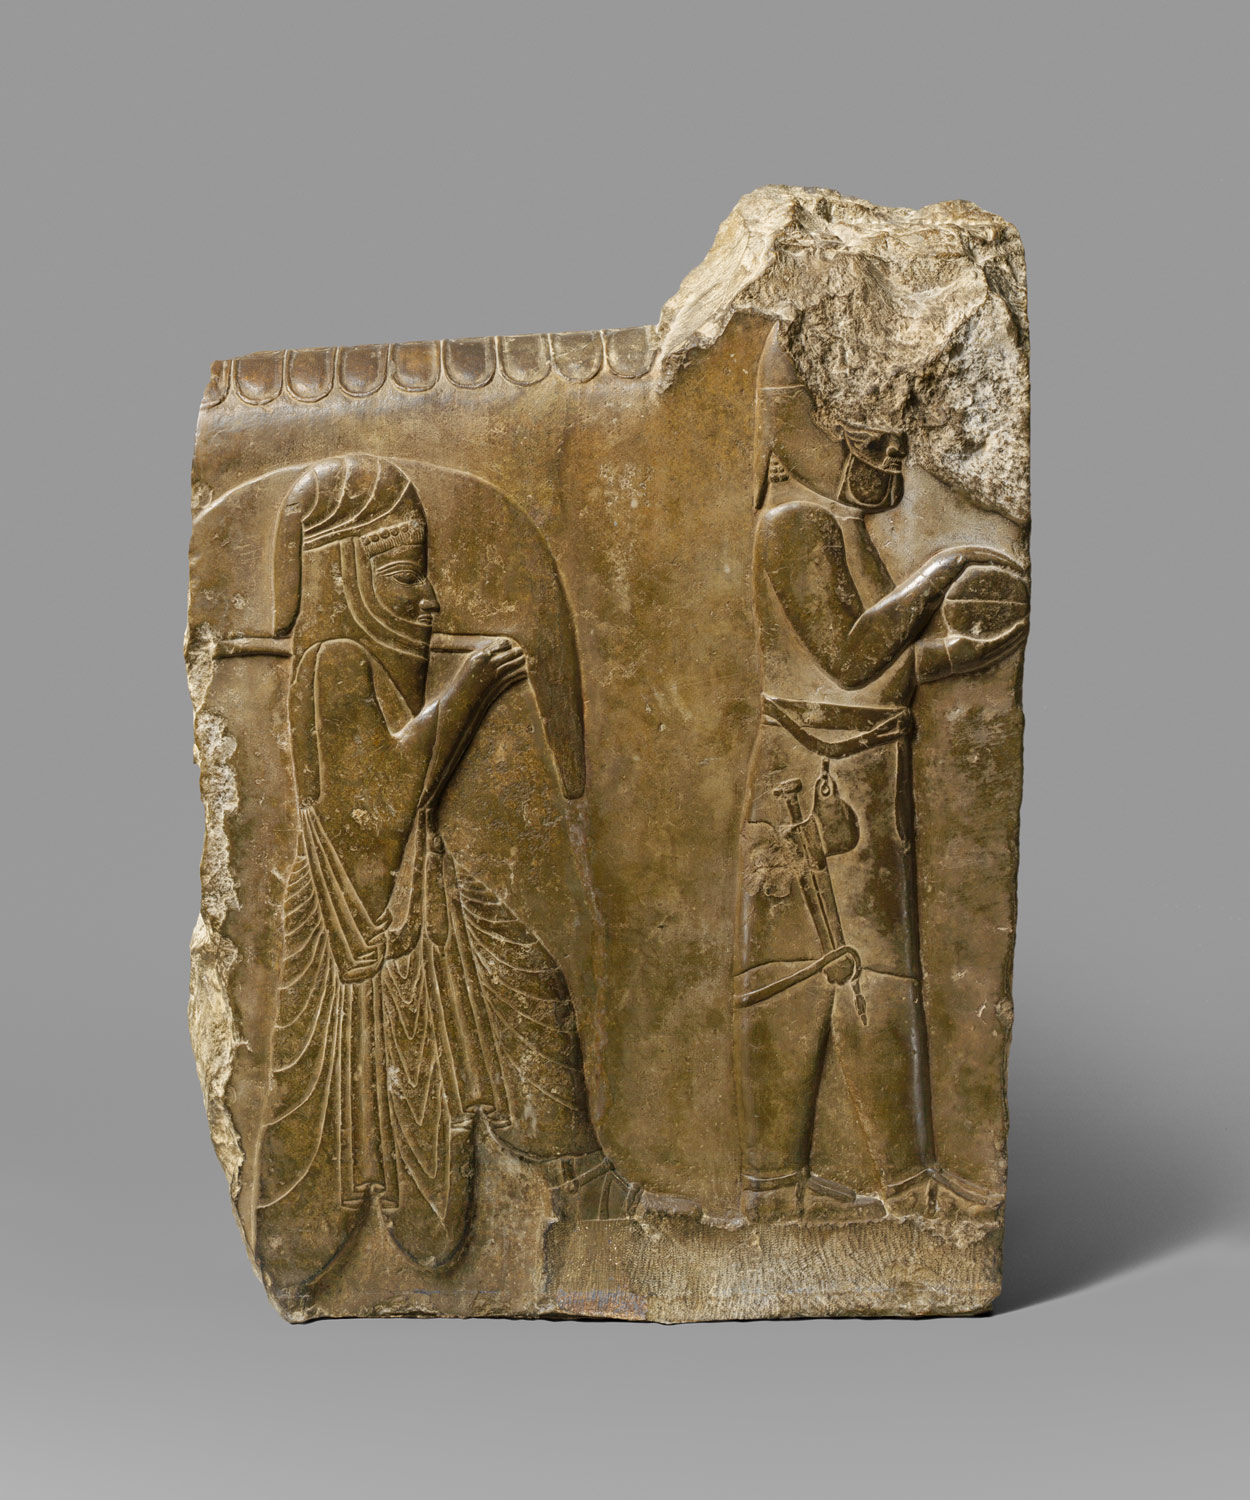 ernst emil herzfeld in persepolis essay heilbrunn relief two servants bearing food and drink